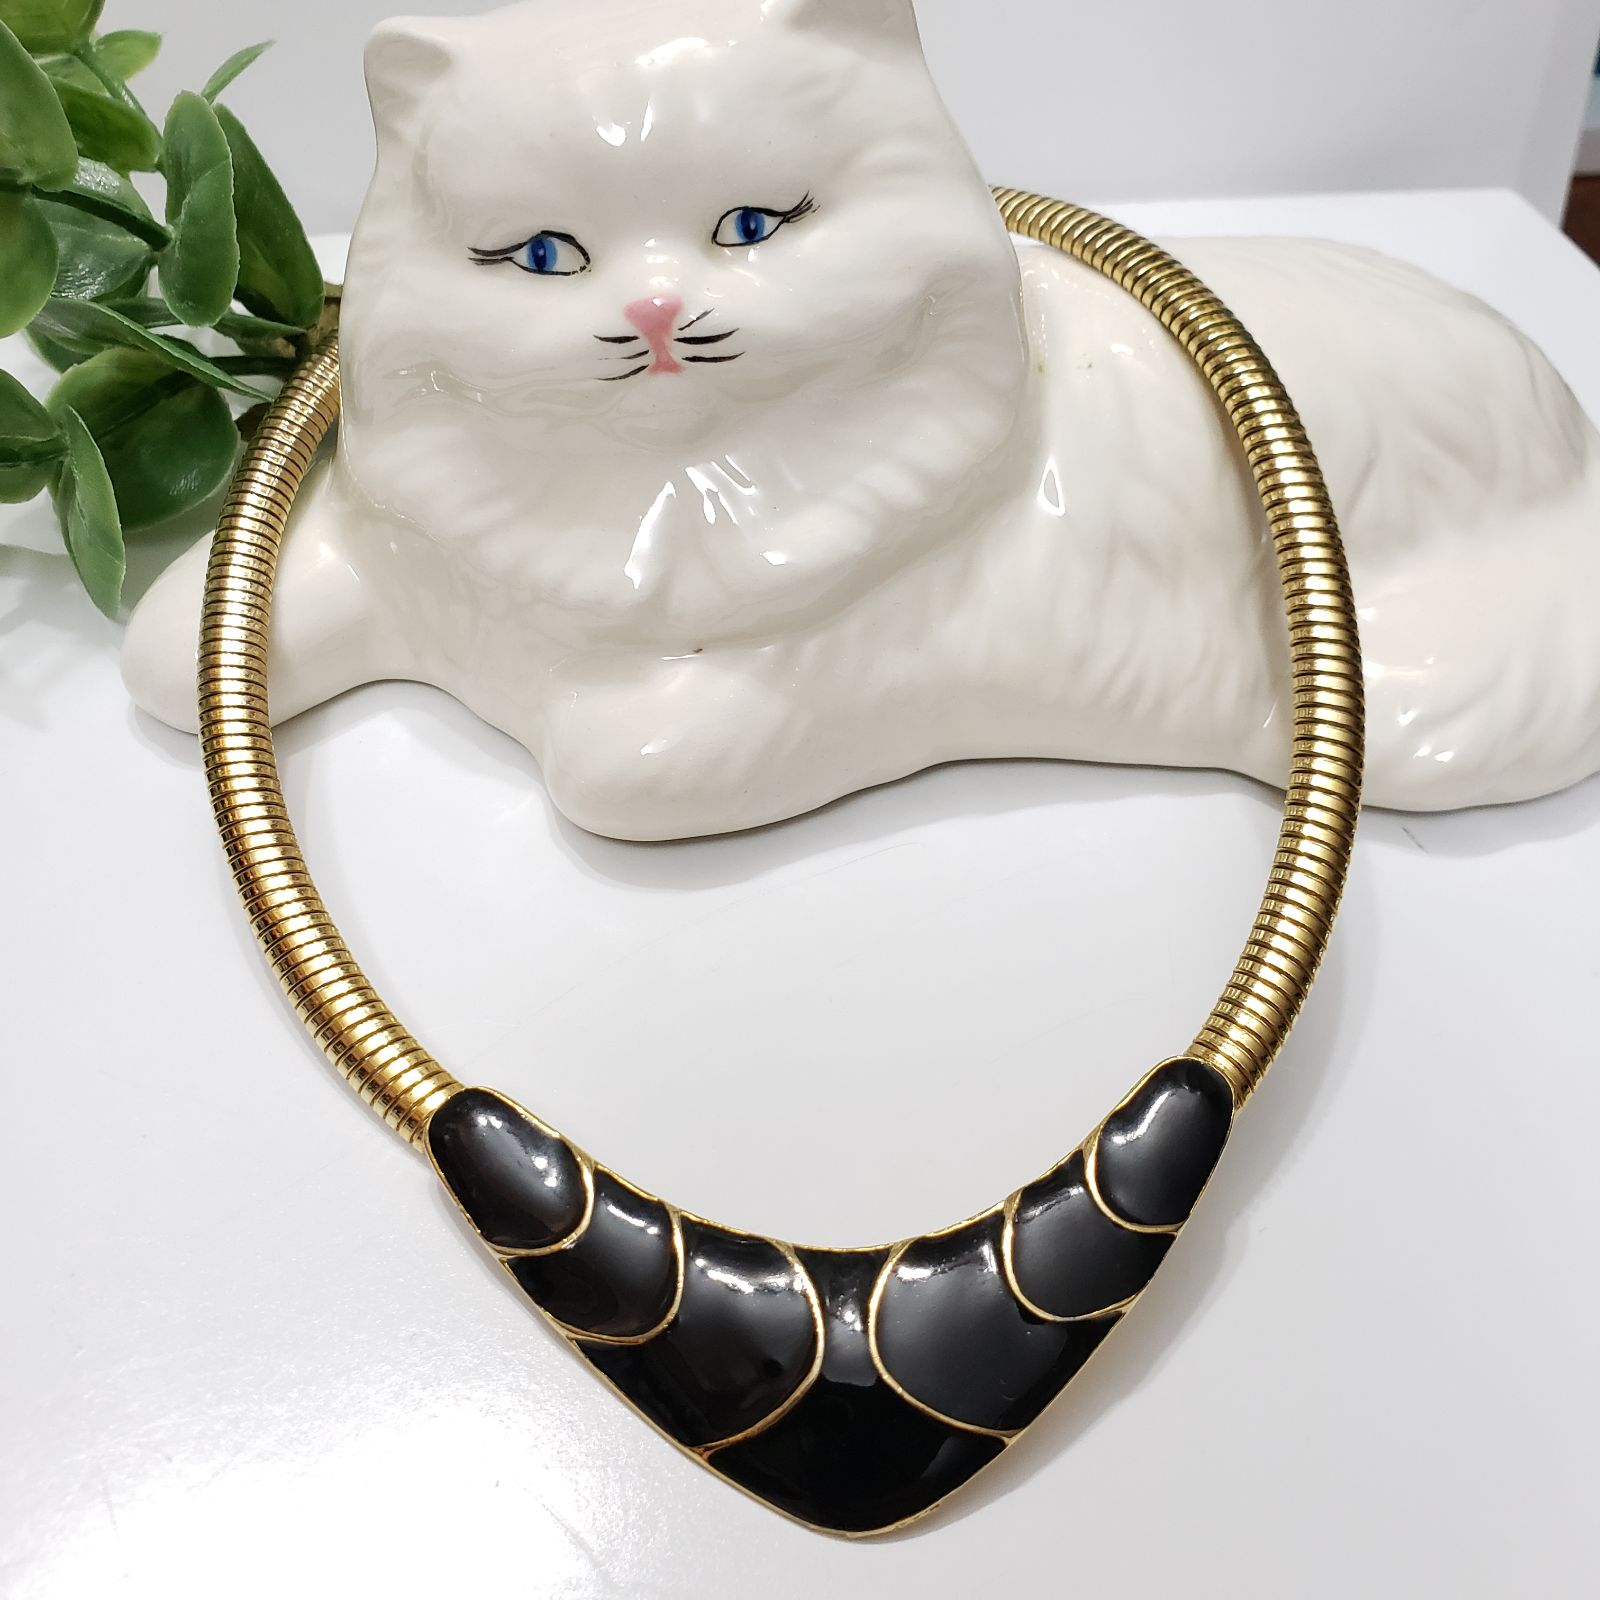 Gold & Black Enamel collar Necklace